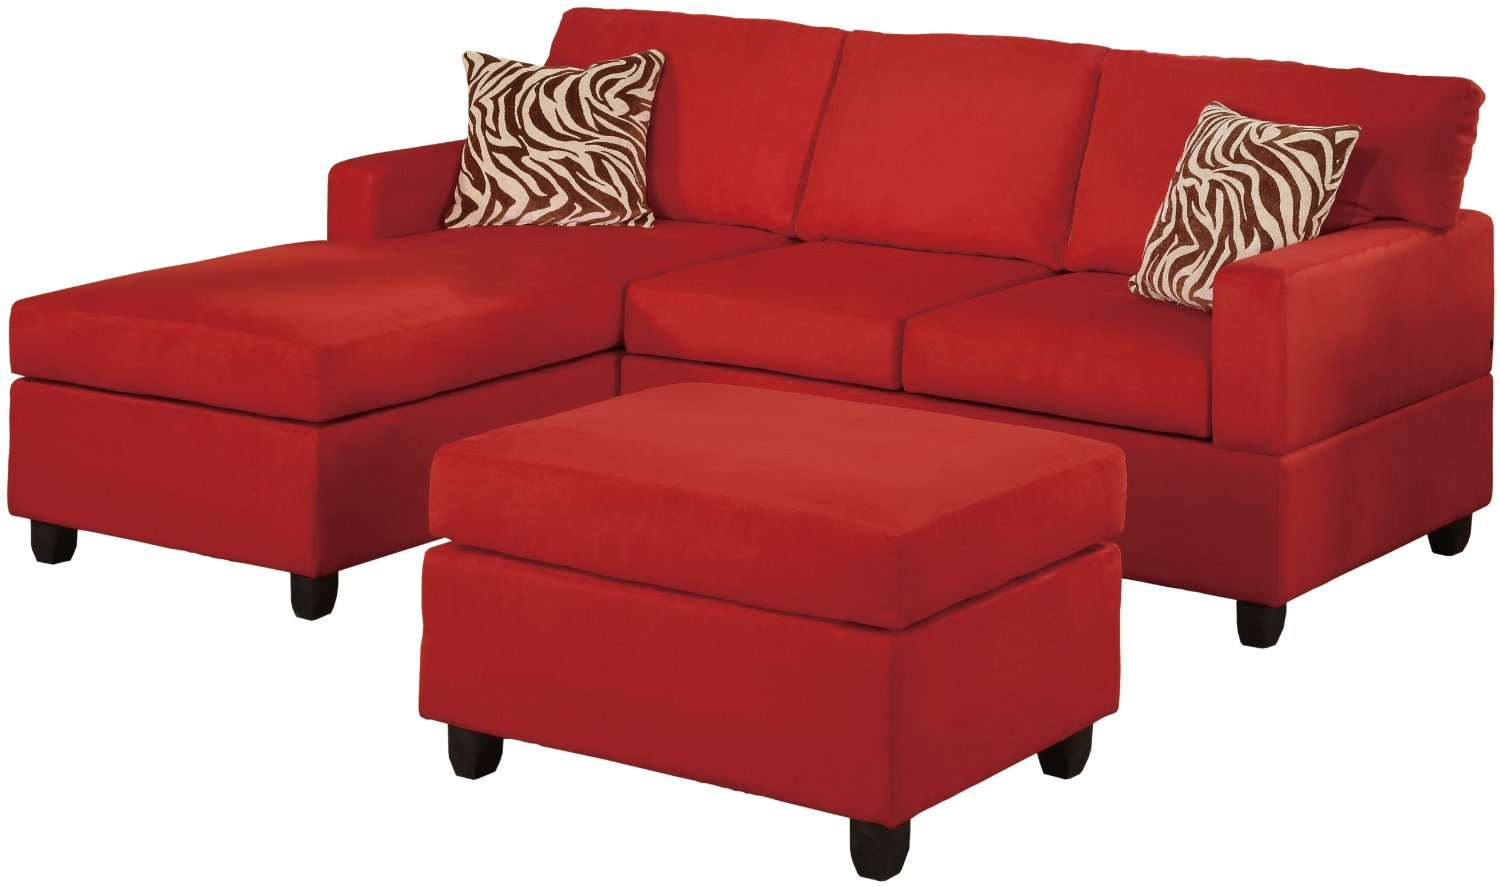 Microfiber Sectional Sofa Set 3 Piece Red Reversible